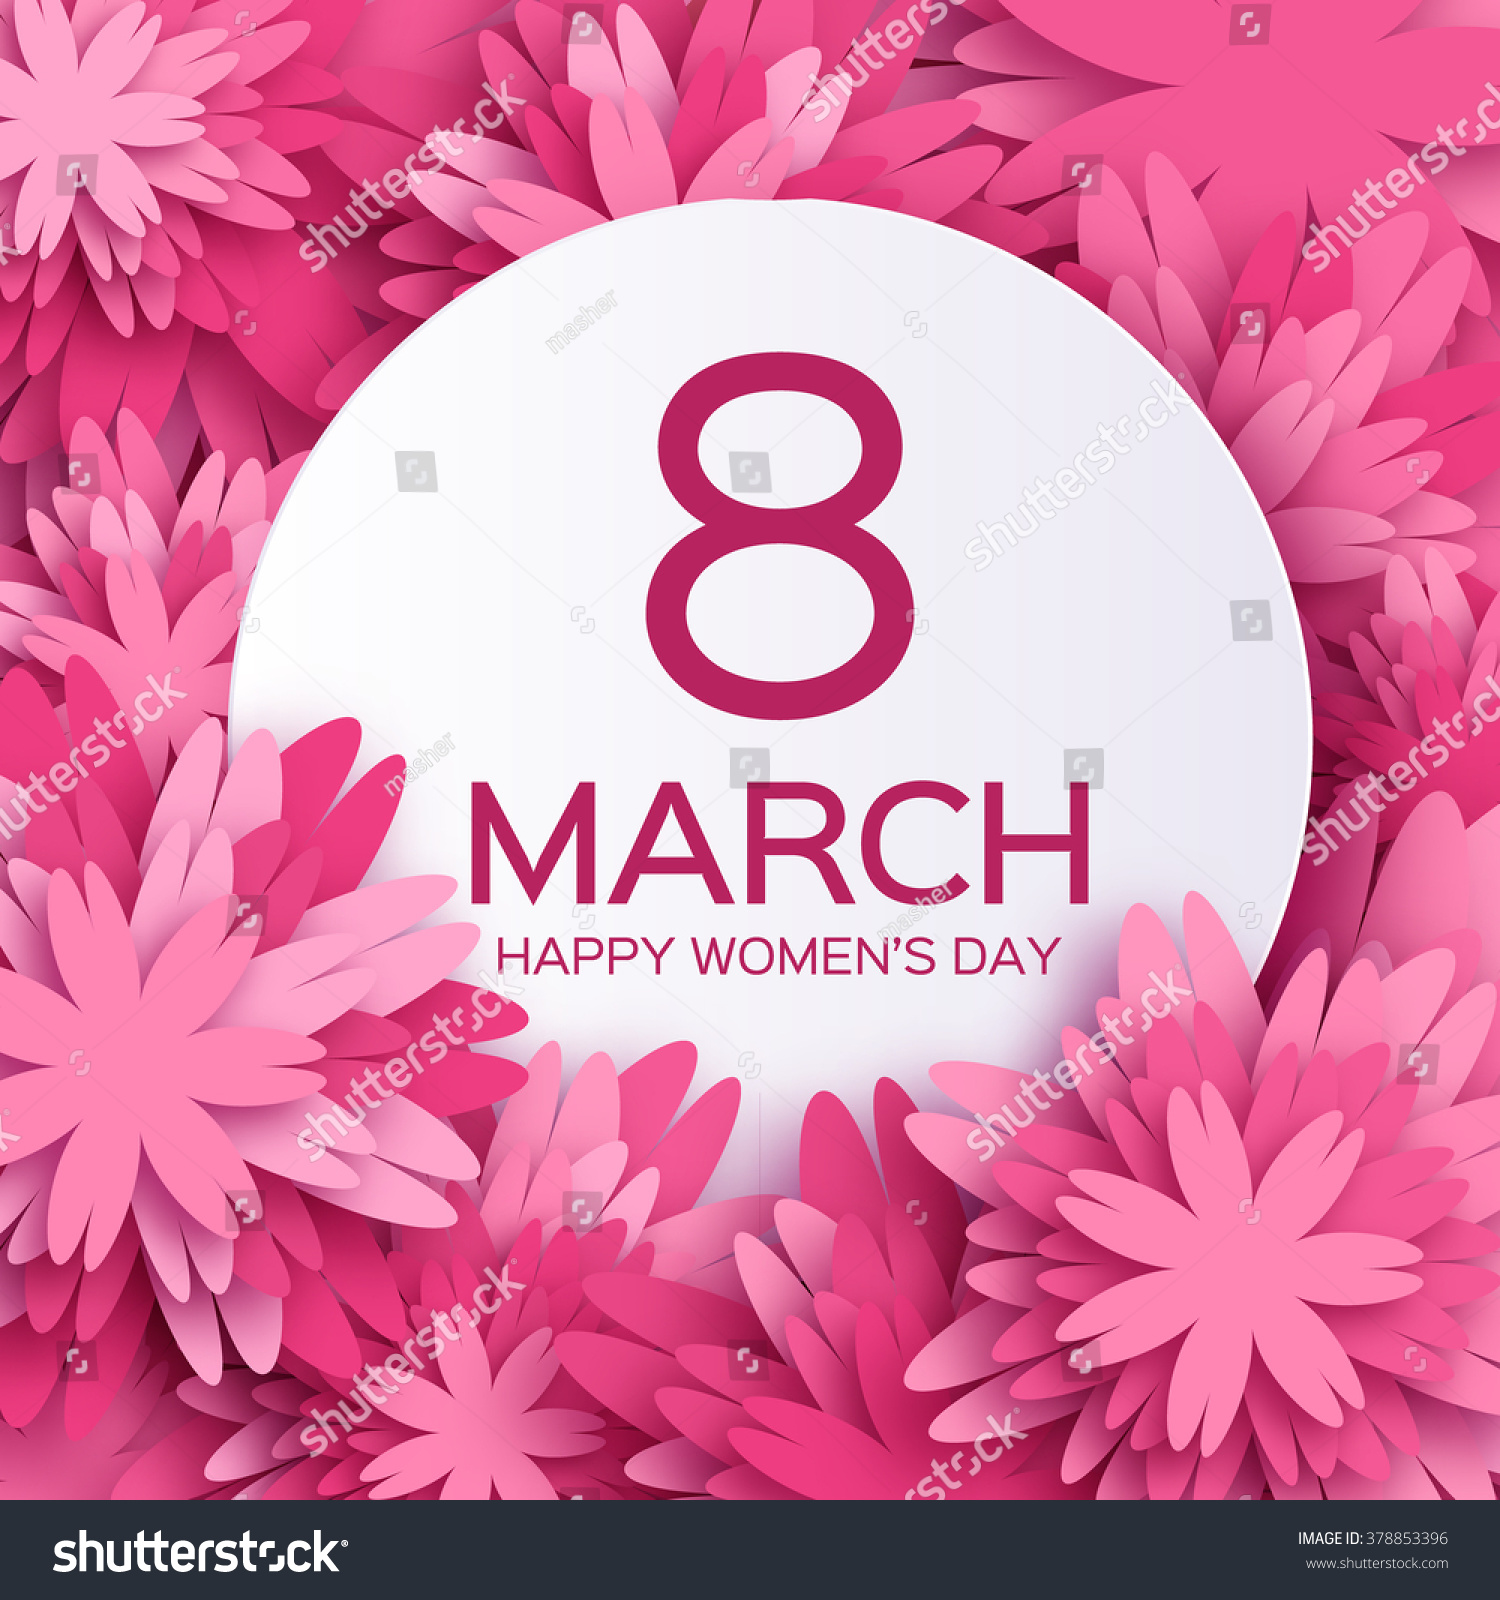 abstract pink floral greeting card international stock vector abstract pink floral greeting card international happy women s day 8 holiday background